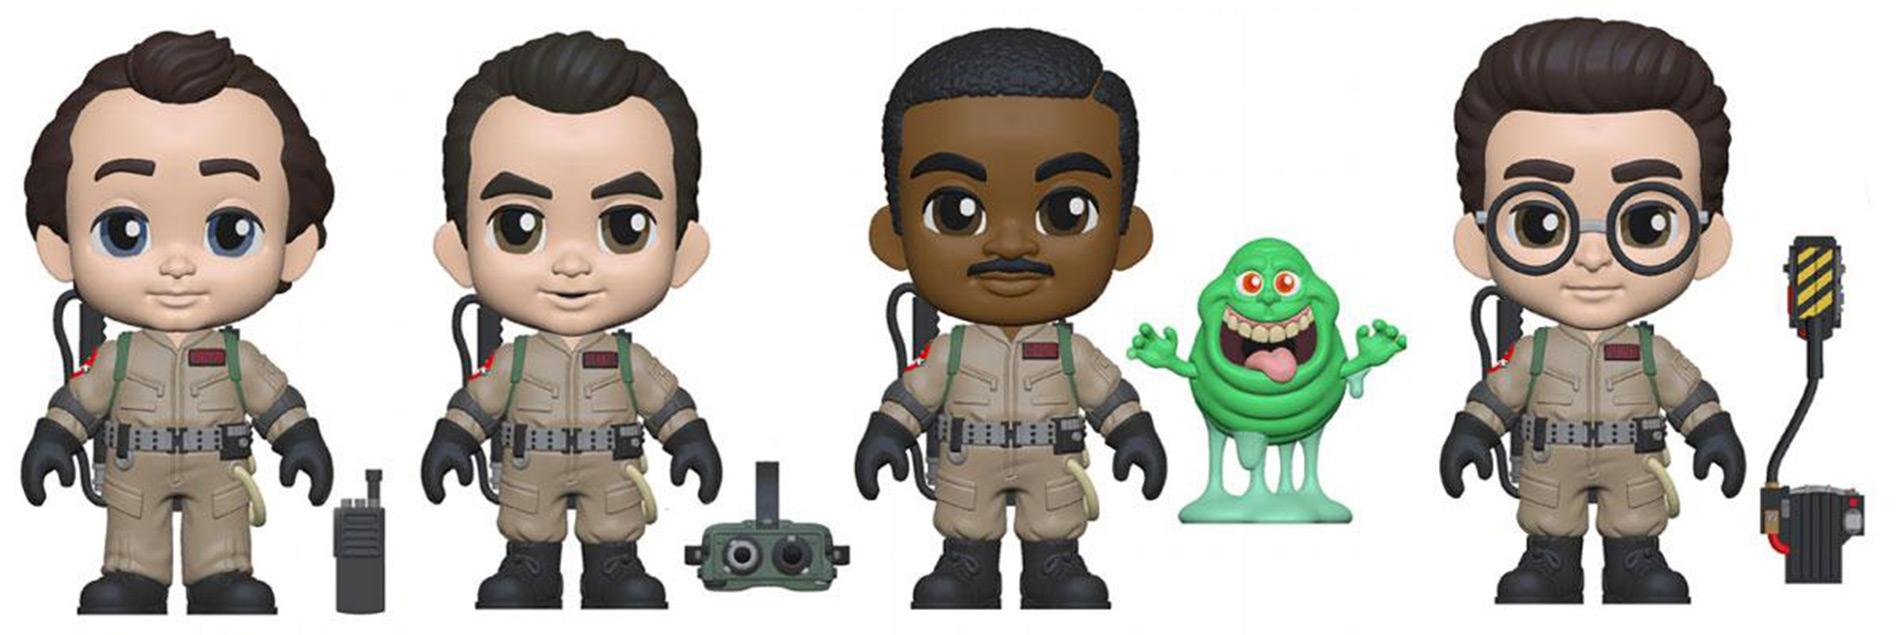 Shelf Worthy: Funko's New York Toy Fair Announcements